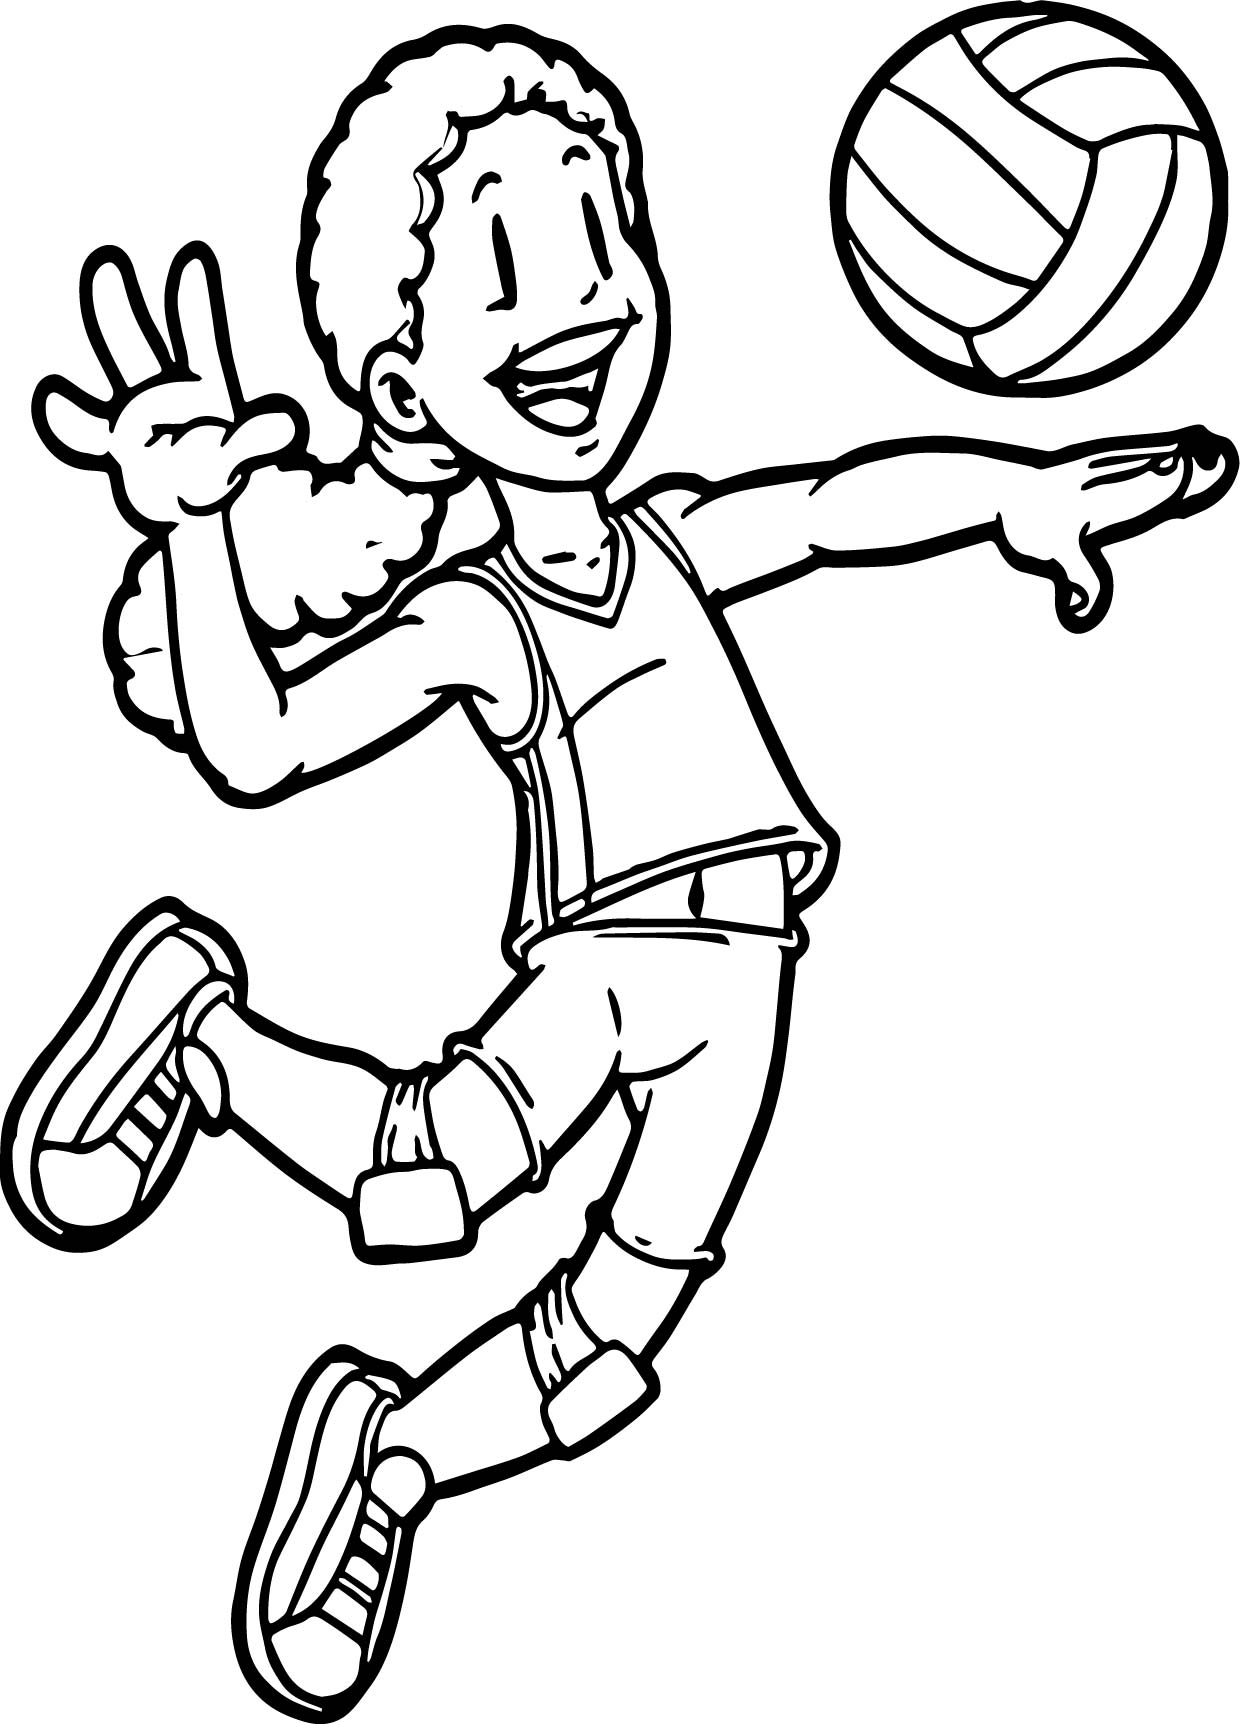 Kids Playing Sports Volleyball Coloring Page